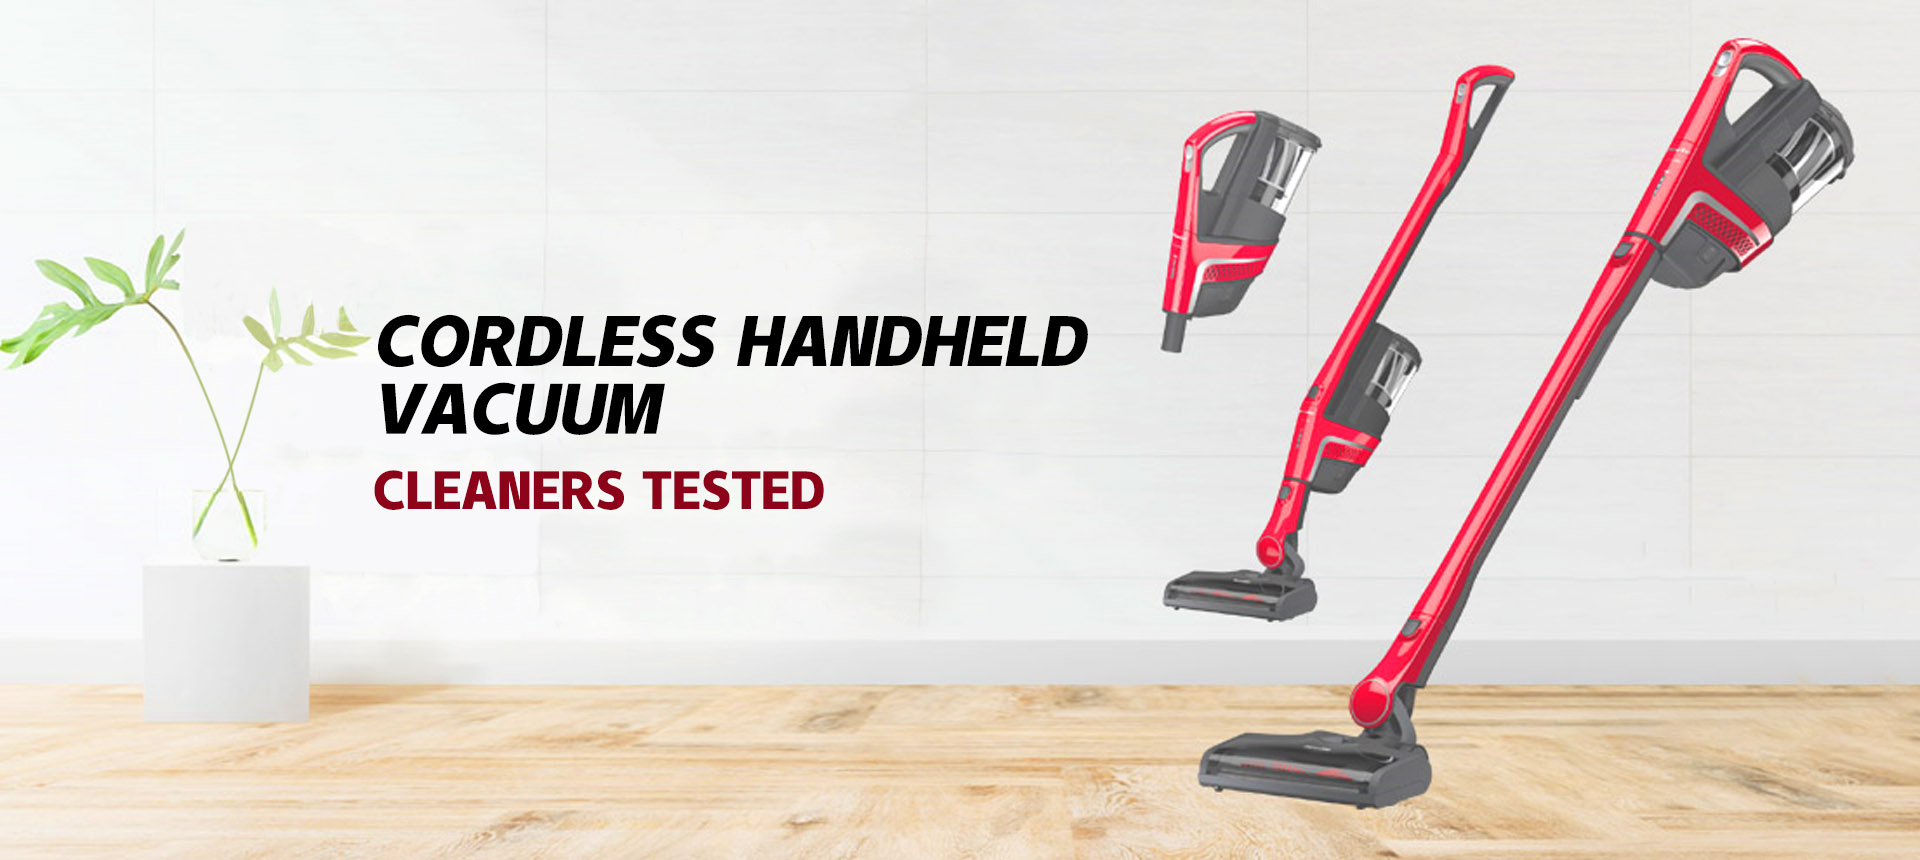 Cordless Handheld Vacuum Cleaners Tested